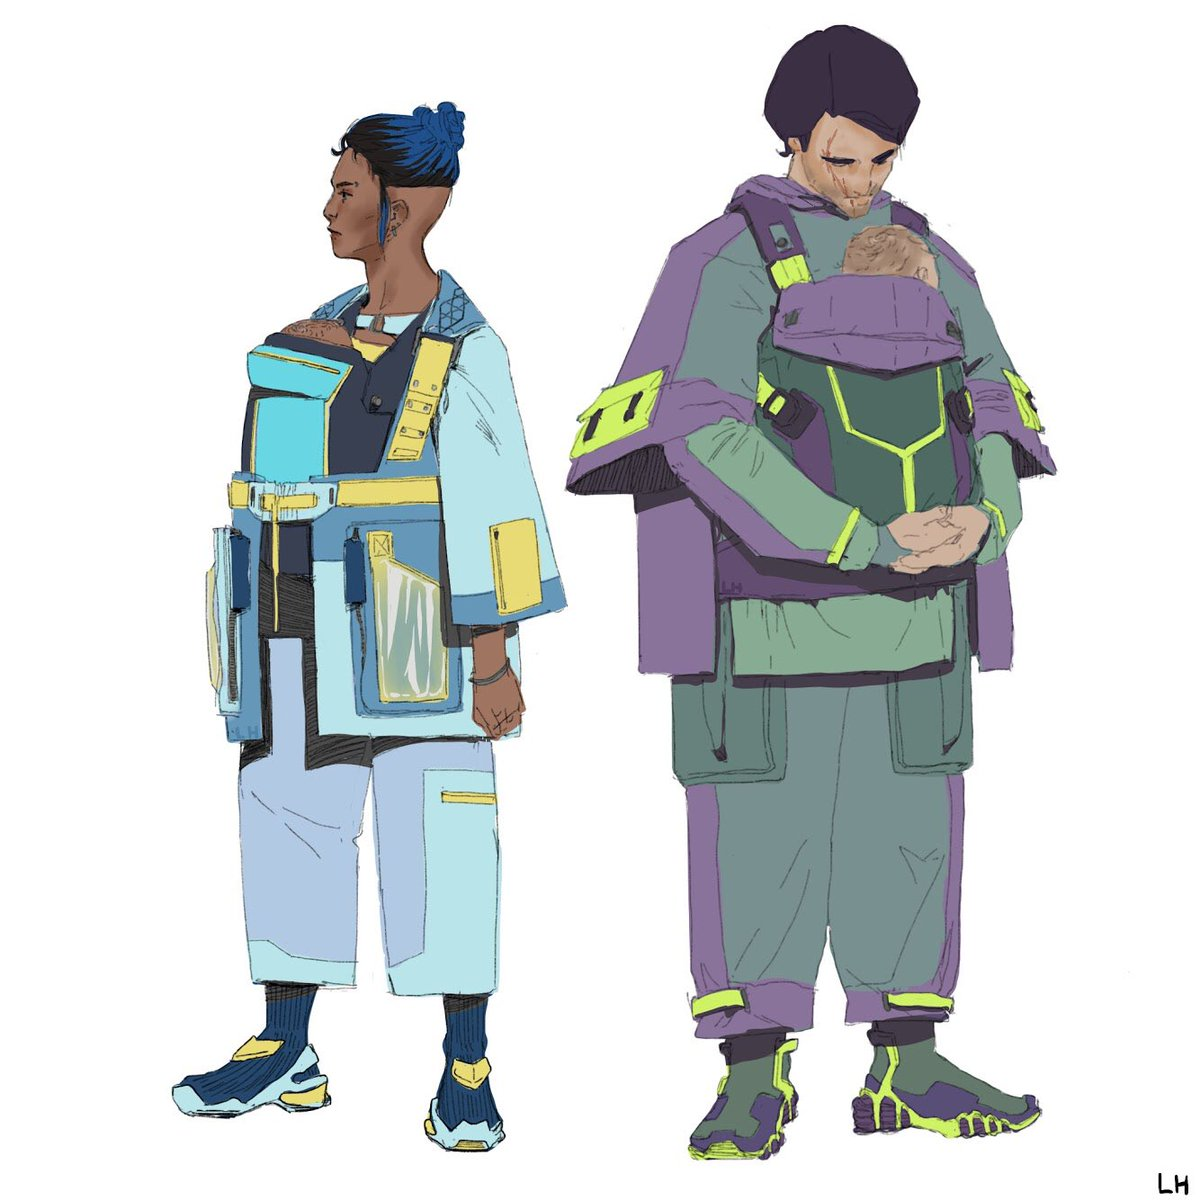 Space parents: 'fashion' mode vs 'bleak outlook' mode